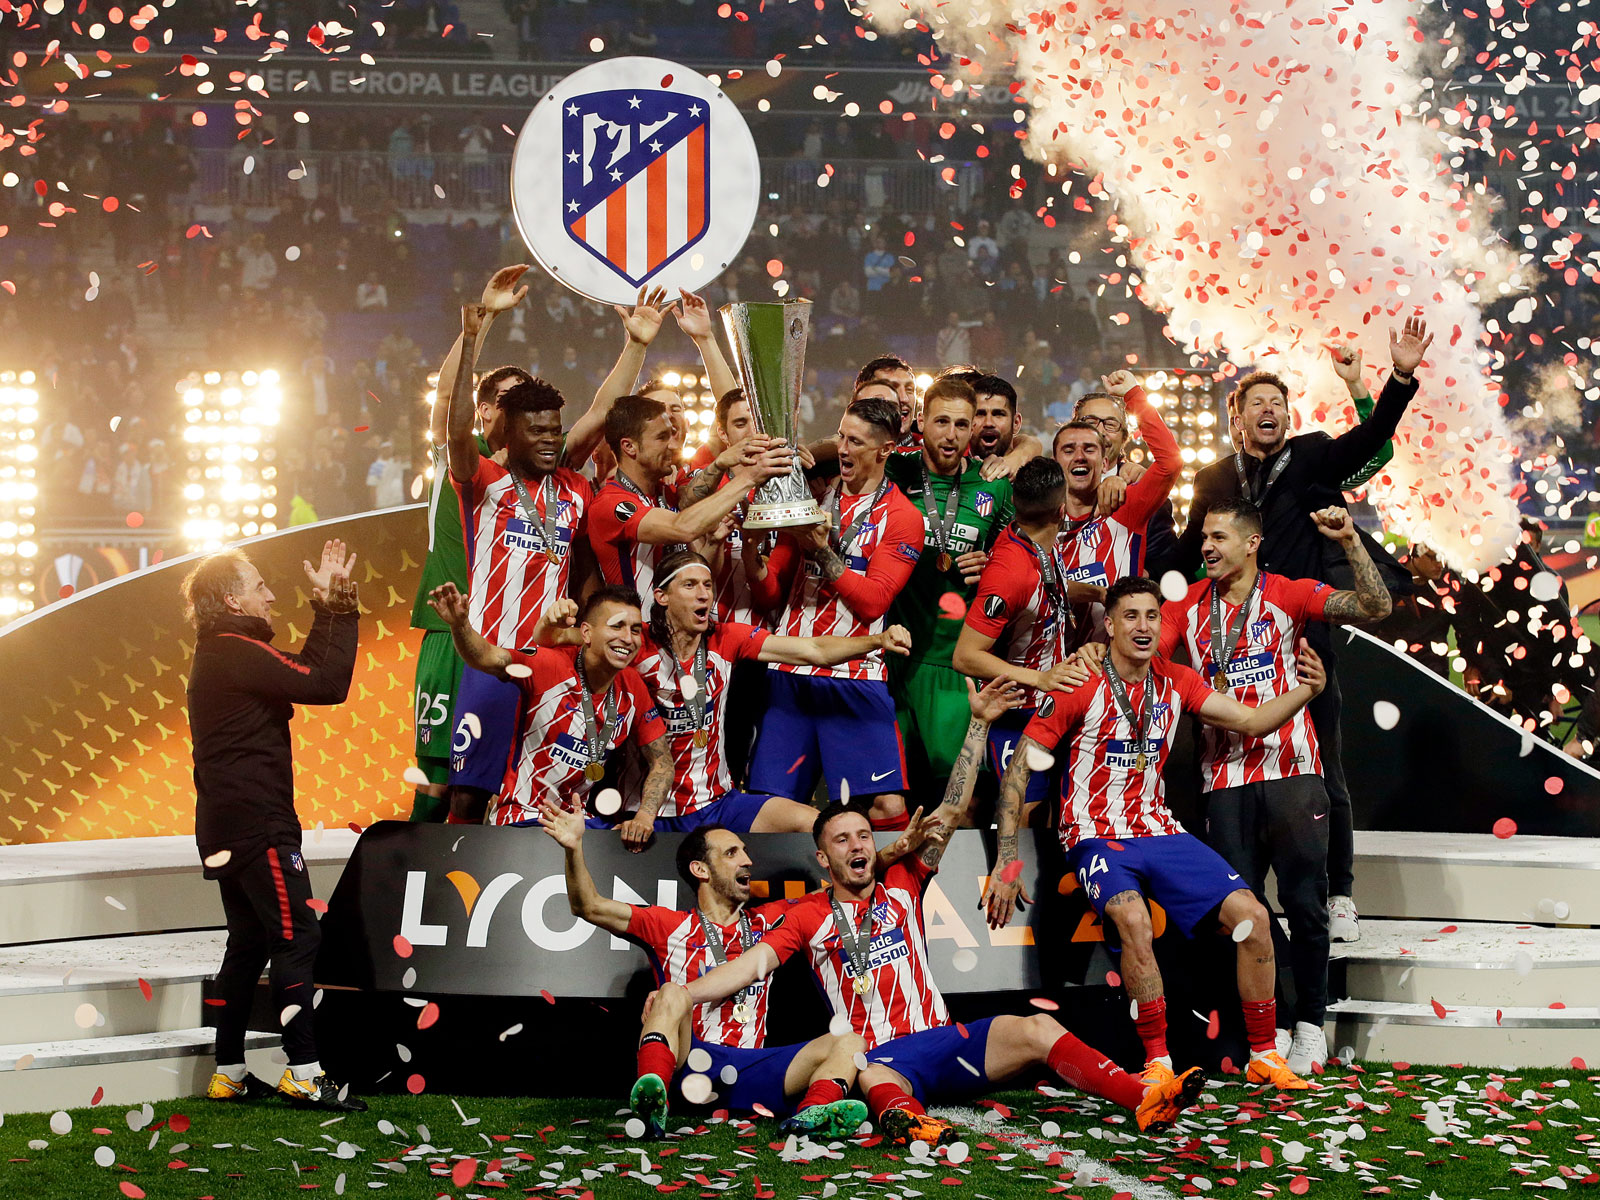 Atletico Madrid wins the Europa League title